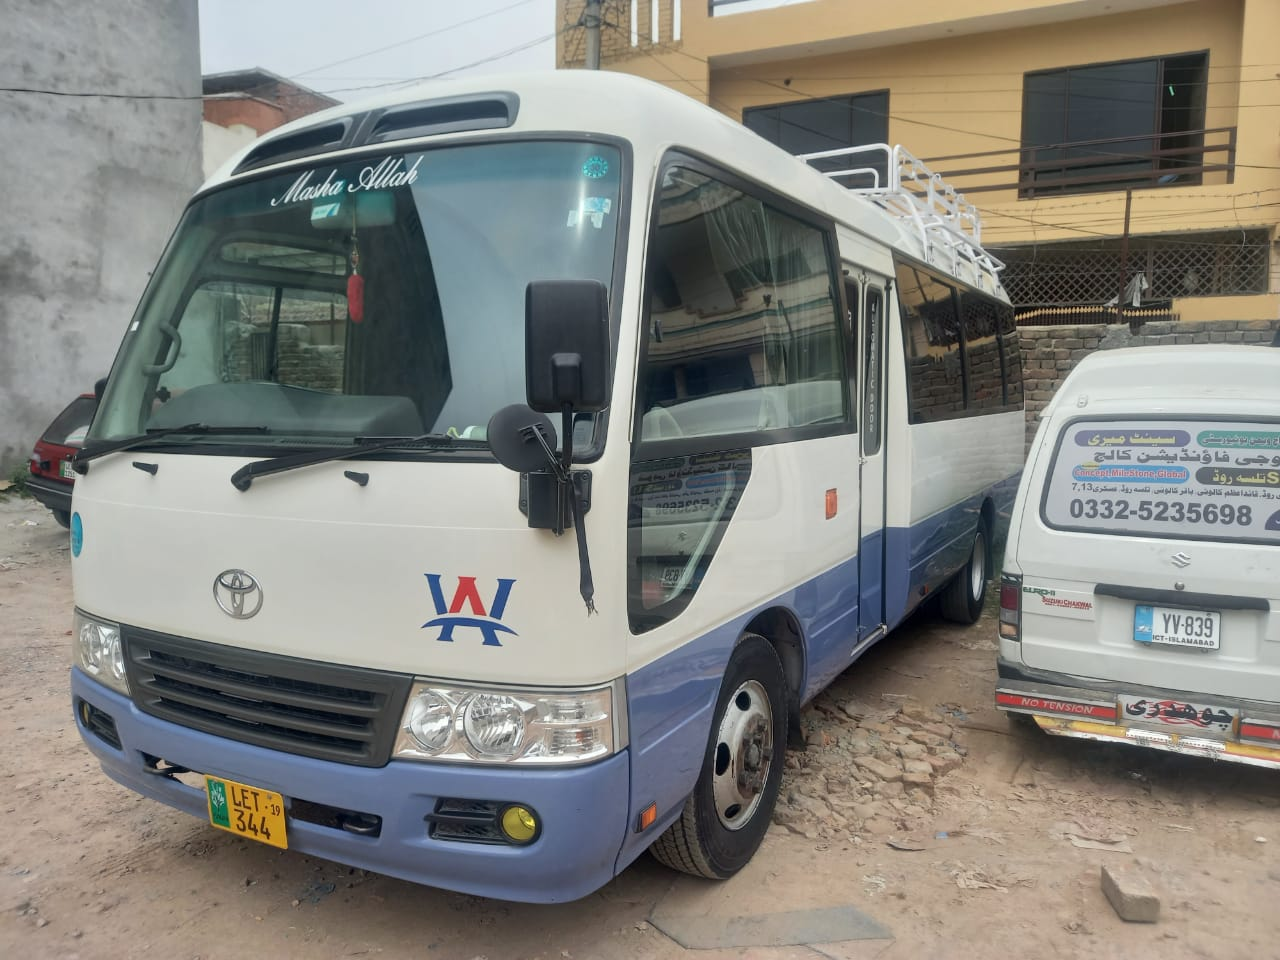 Toyota coaster bus ready for khunjerab tour and for stay in hotel in huzna with tourists